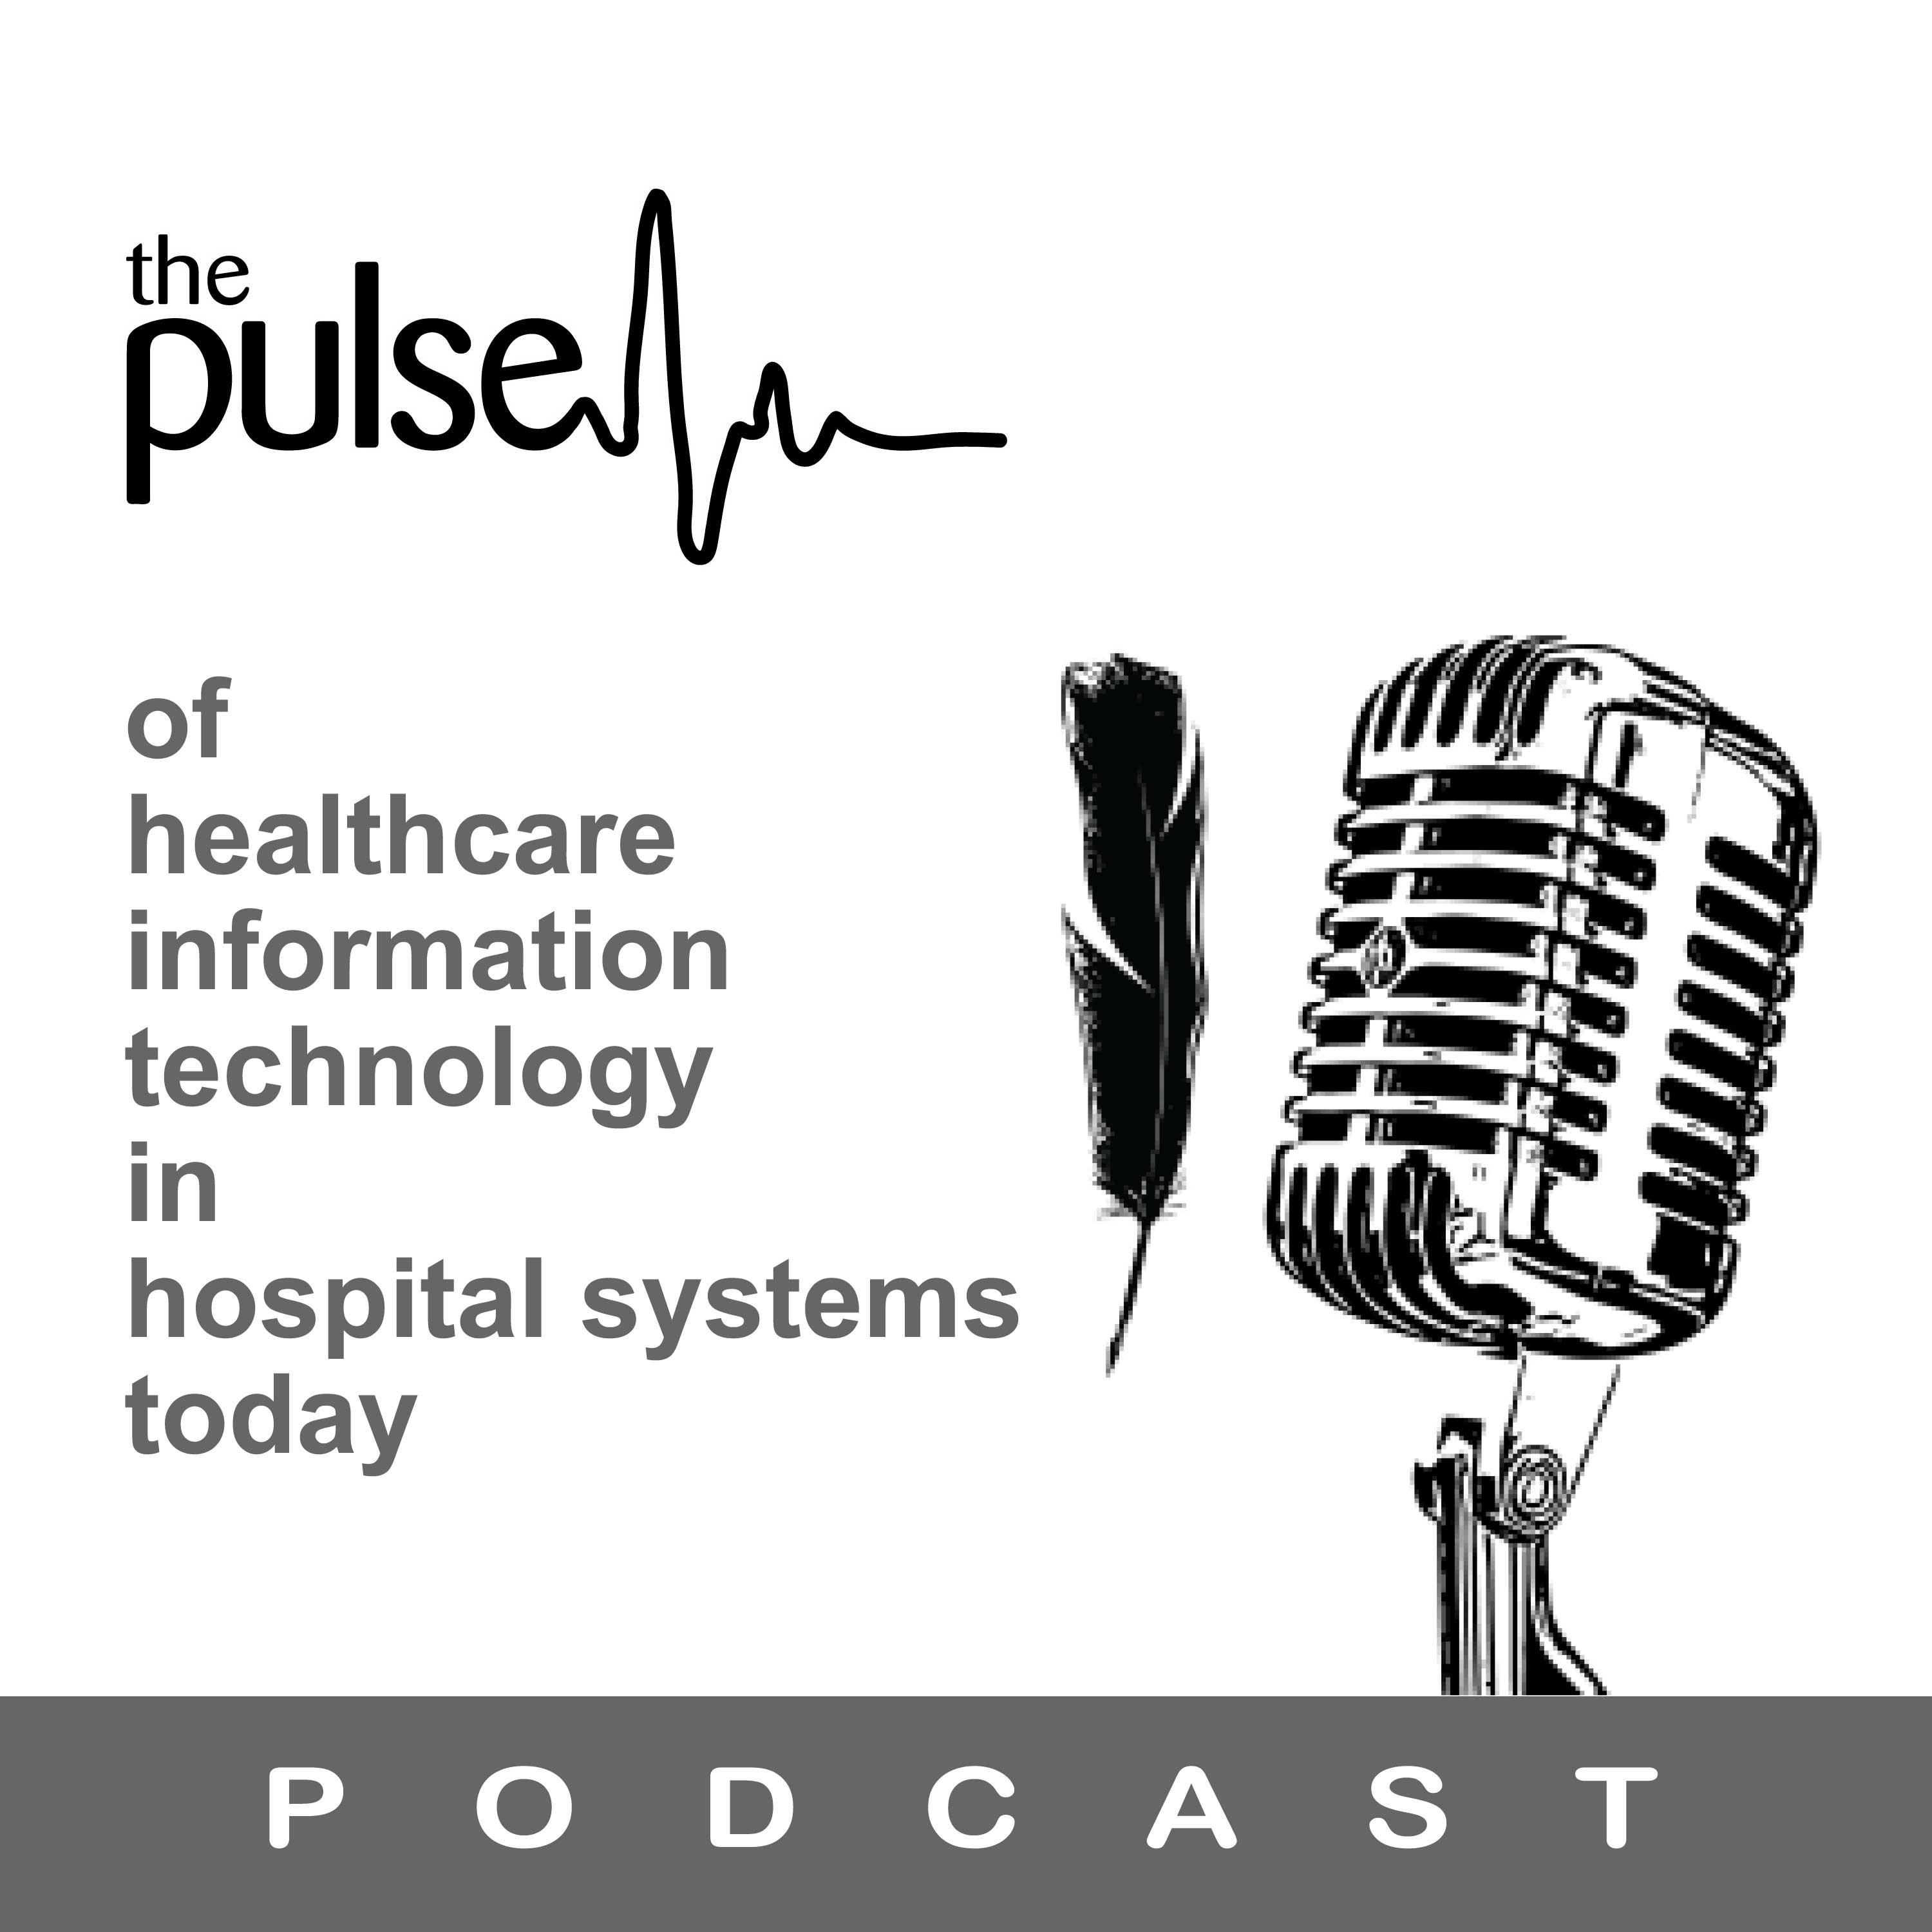 The Pulse of Healthcare Information Technology